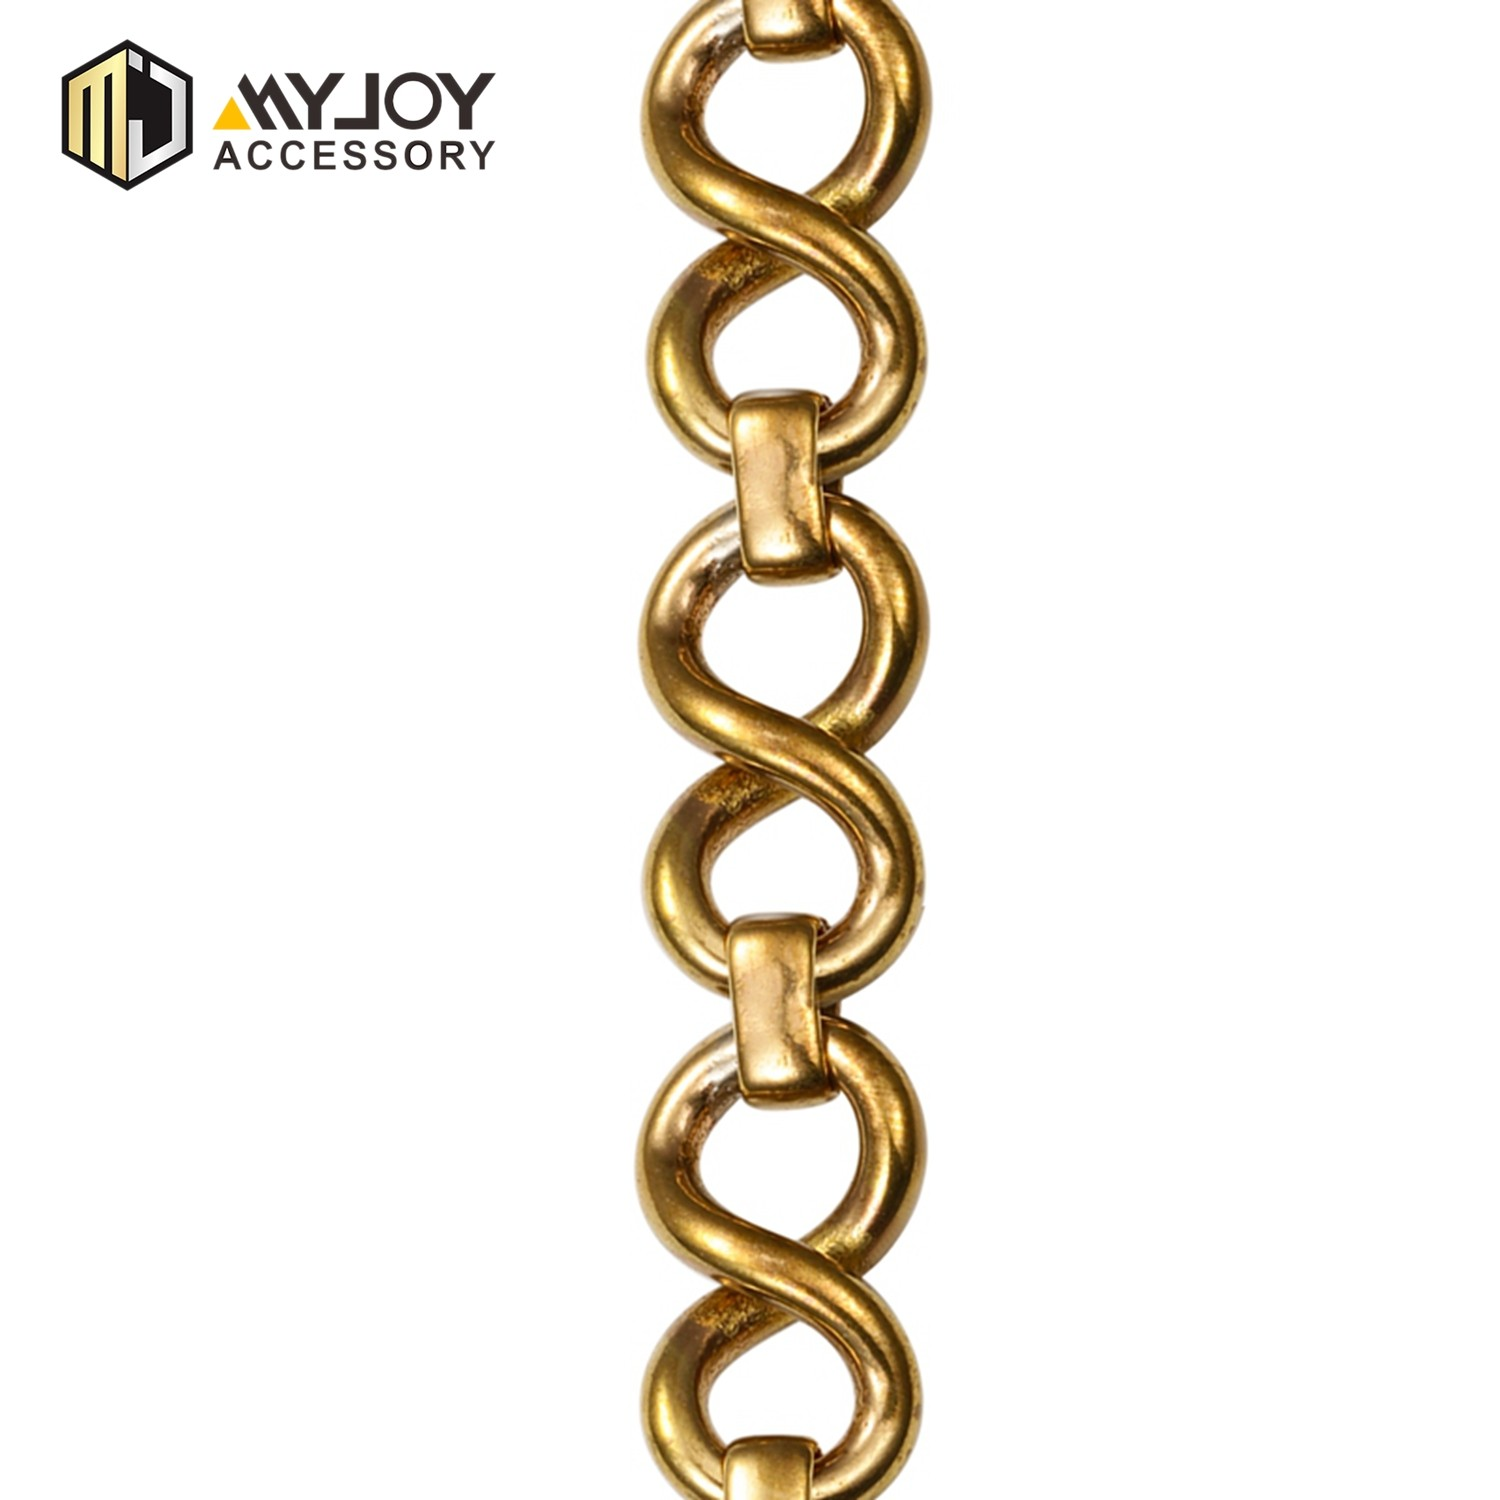 MYJOY Wholesale handbag strap chain Supply for bags-1